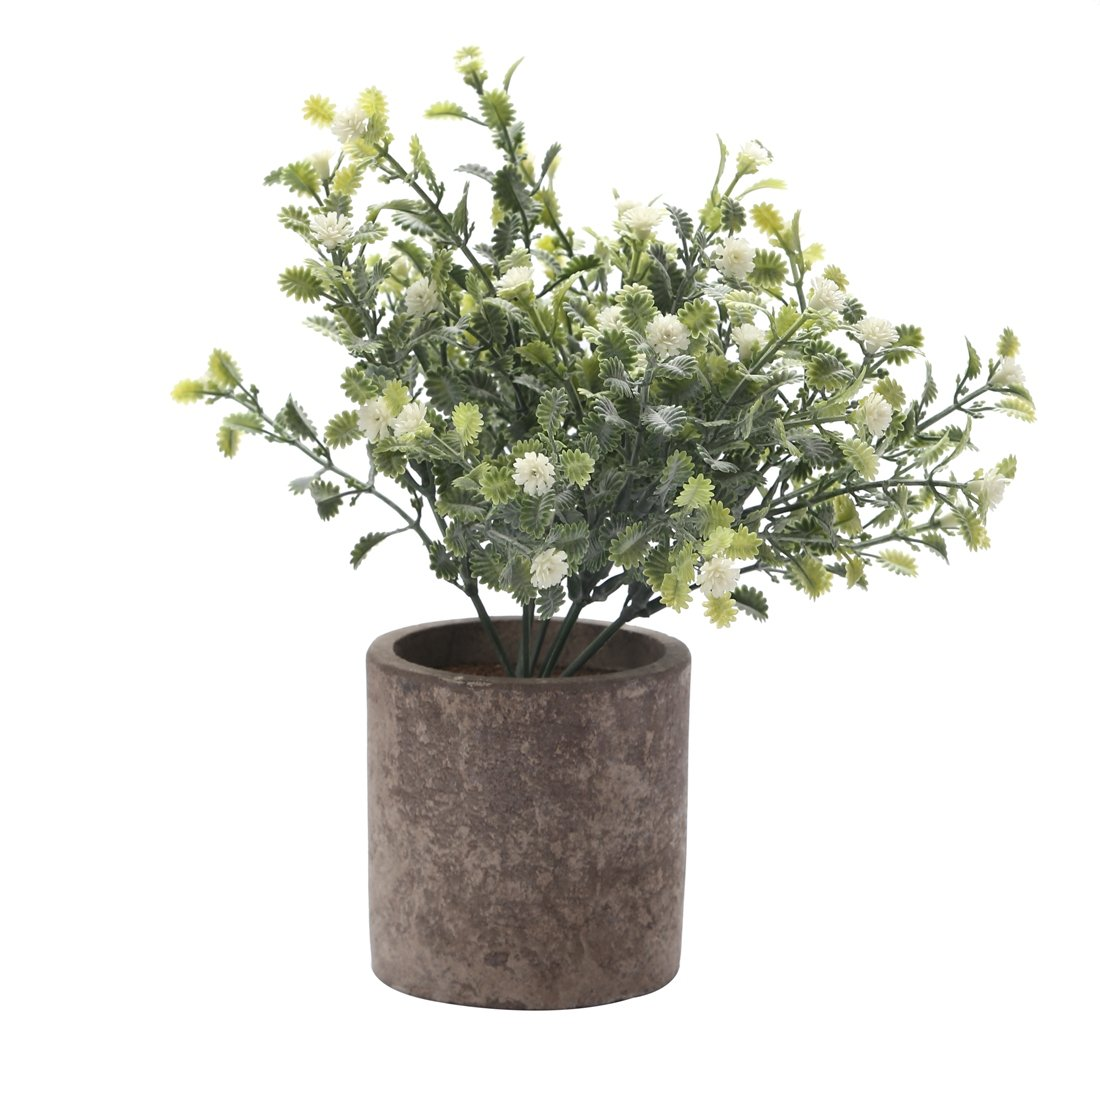 HC STAR Artificial Plant Potted Mini Fake Plant Decorative Lifelike Flower Green Plants - 1103